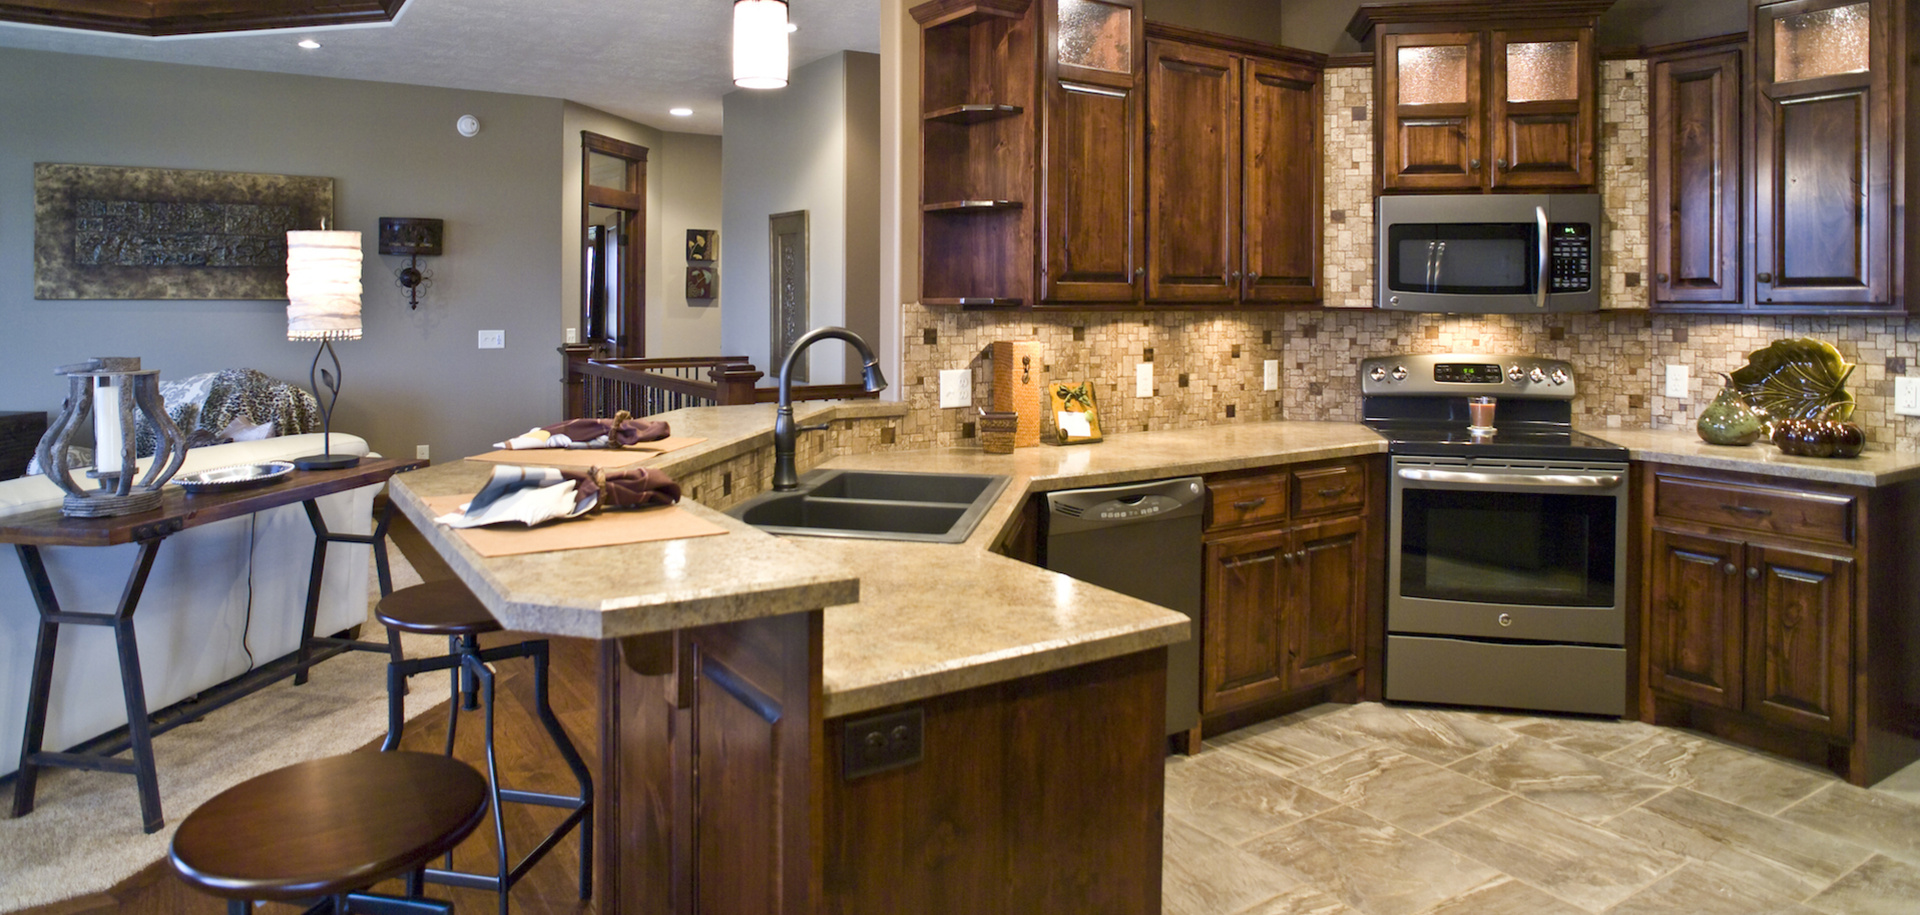 Sioux Falls South Dakota remodeling contractors